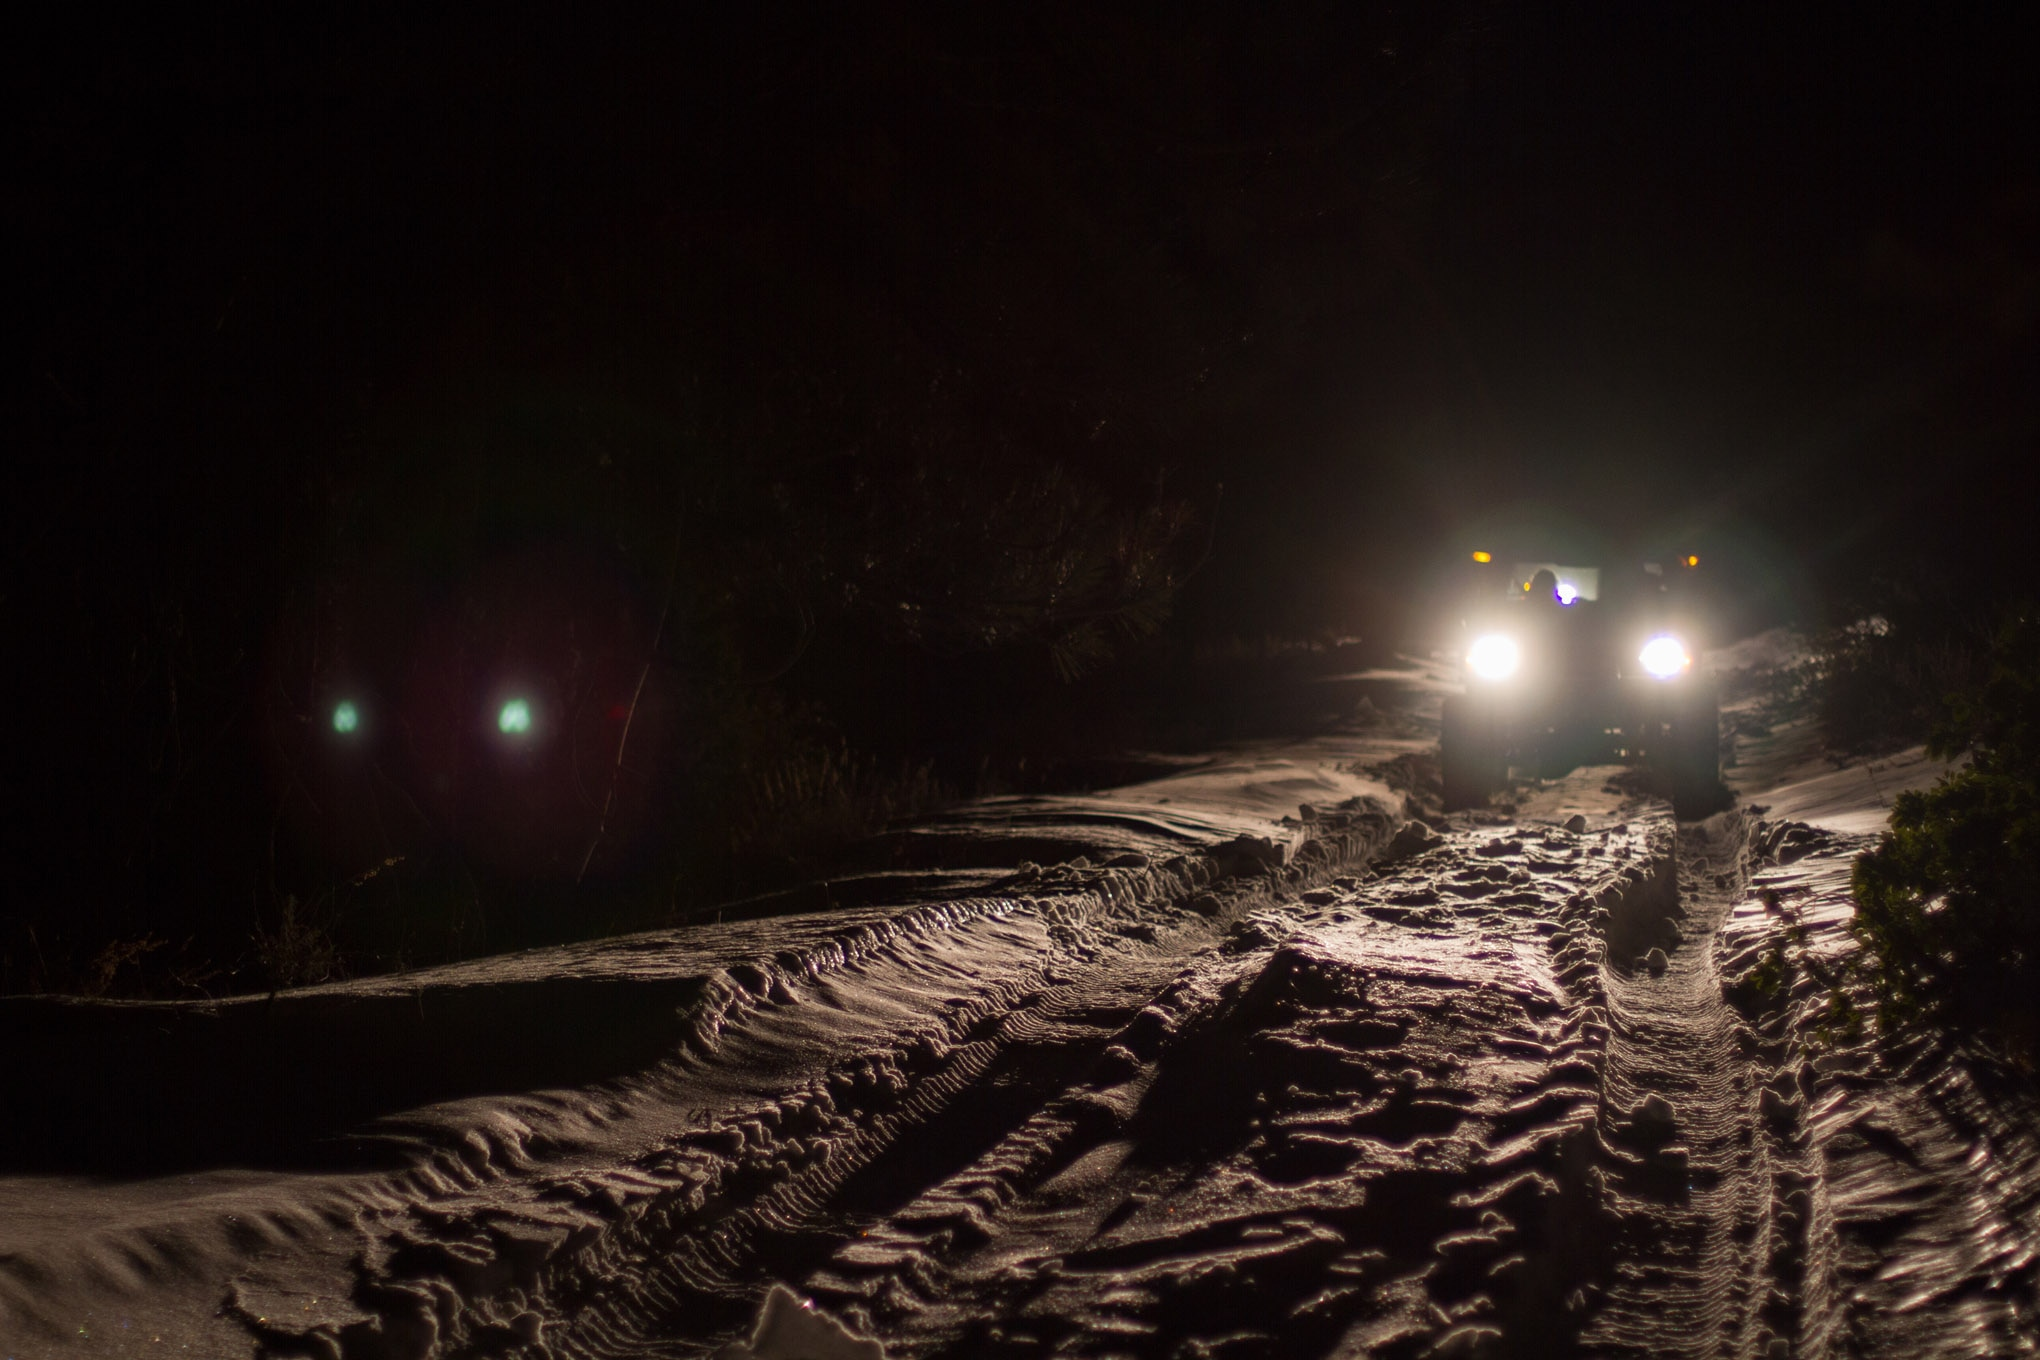 Wheeling in the snow at night adds an entirely new dimension to an already dangerous hobby. Temperatures are lowr at night, and it's easier to get disoriented. These are issues that can be overcome, but you need to be aware of them and prepare with the right equipment.